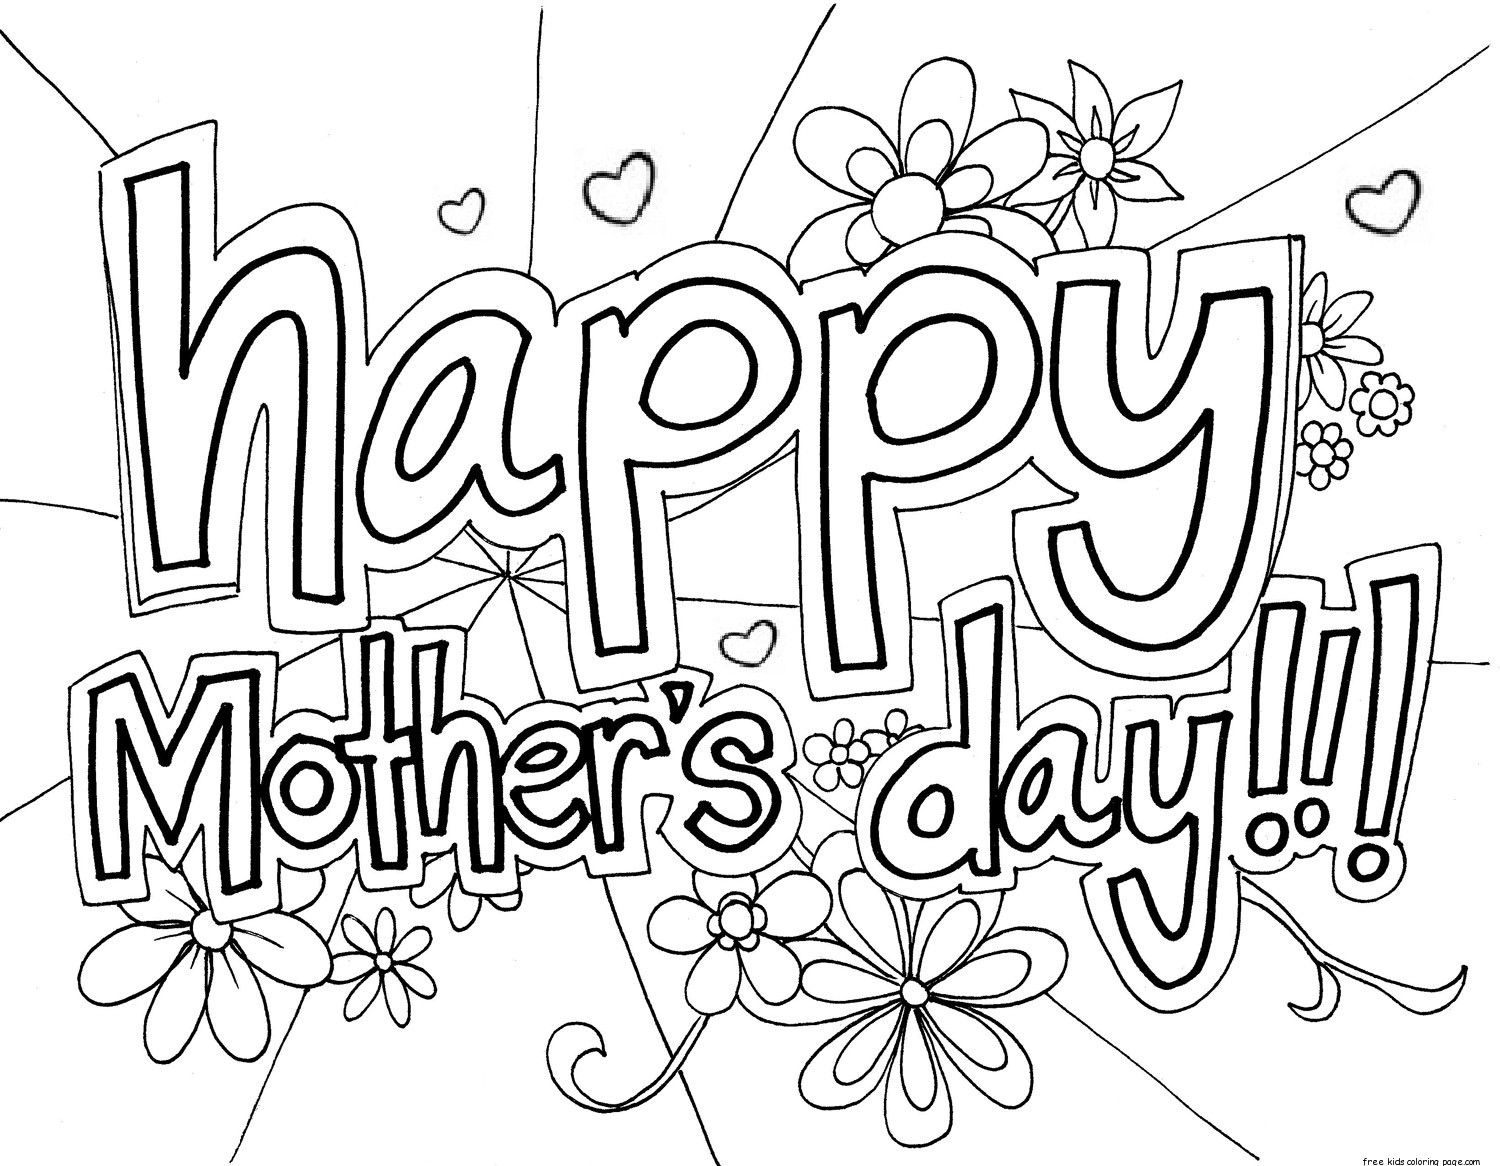 Print Out Happy Mothers Day Grandma Coloring Page For Kids Mothers Day Coloring Pages Mothers Day Coloring Sheets Mother S Day Colors